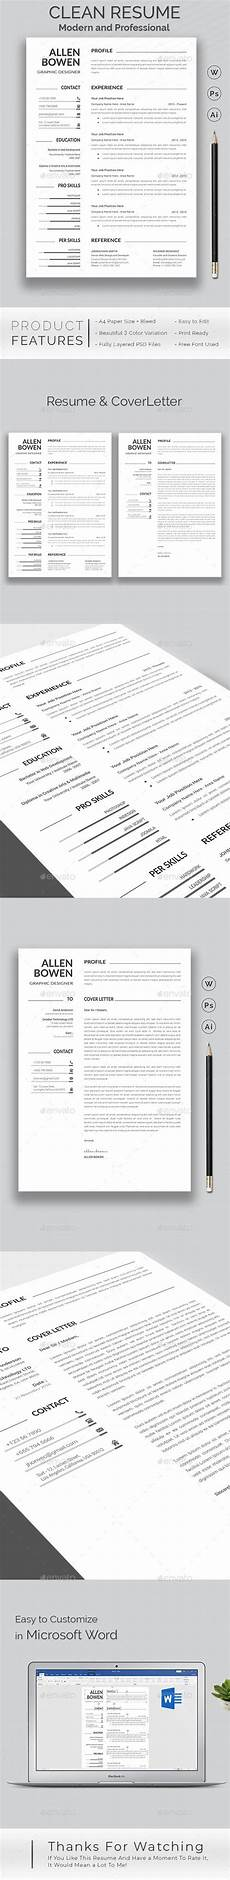 resume special features of this resume template a4 international size with bleed quick and easy